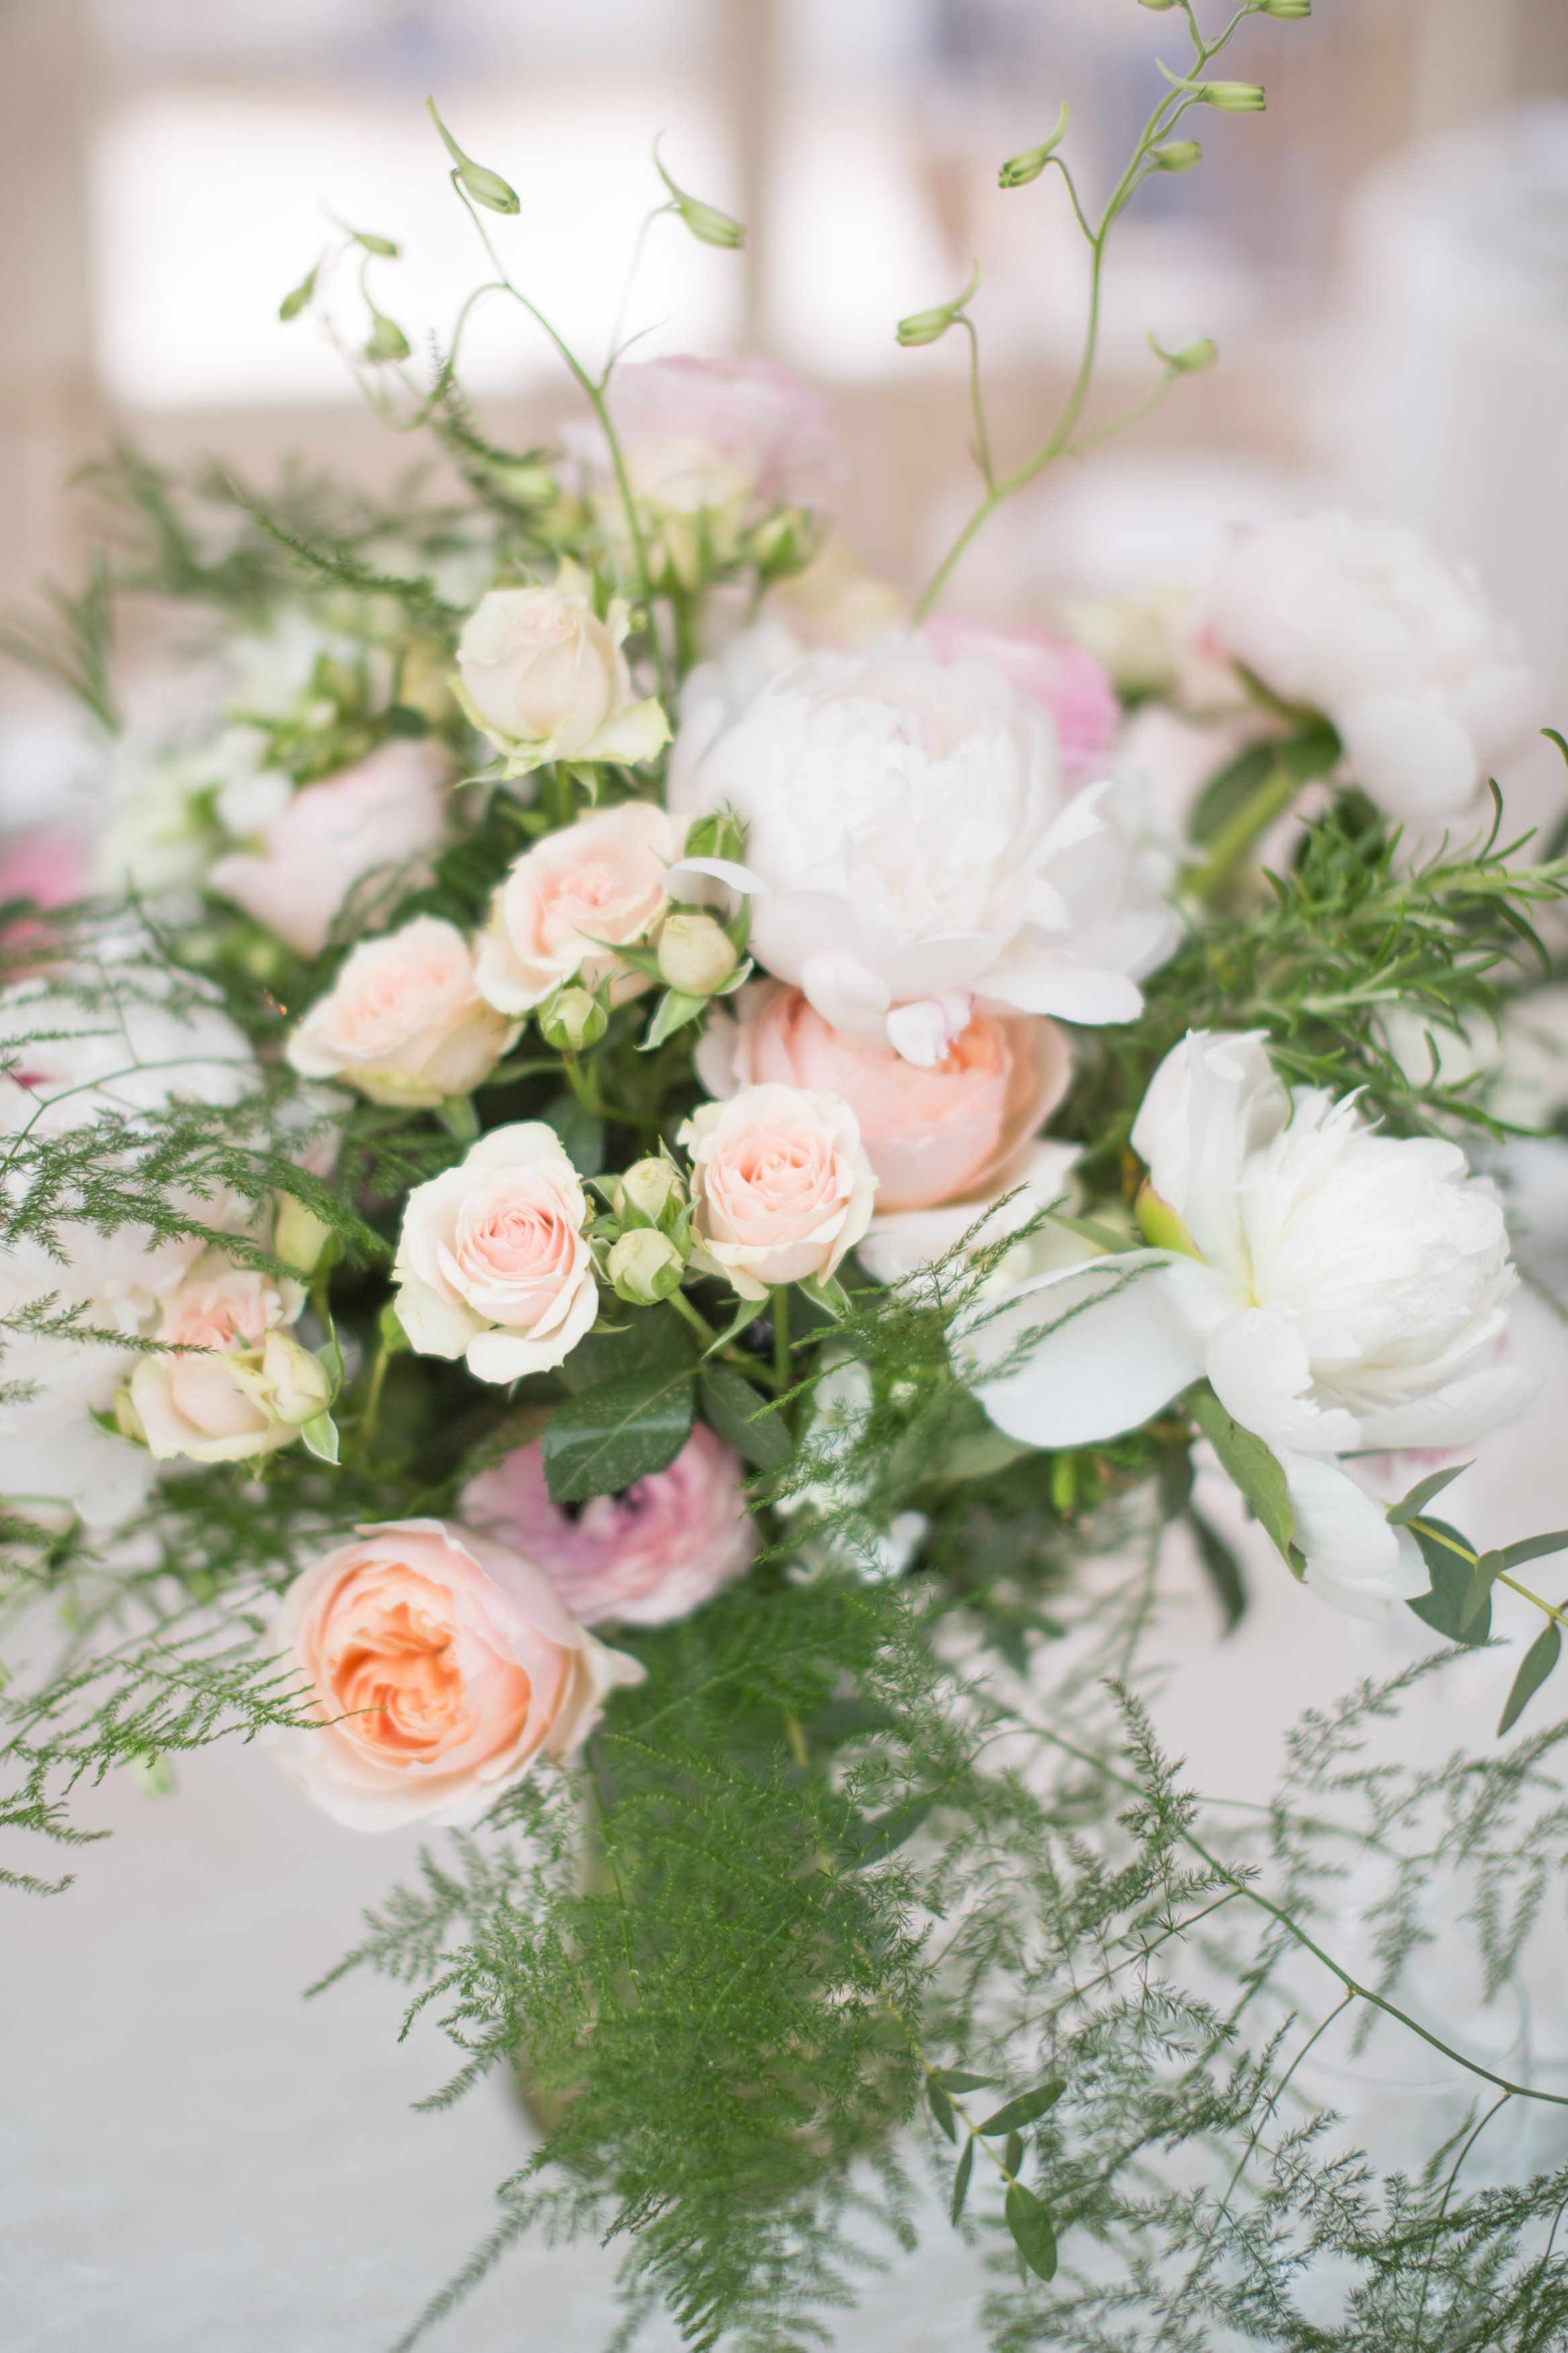 The Table centre pieces had a selection of flowers such as Peonie roses, small pink spray roses, sweet Pea, freesia and ranunculus flowers. Lamber de Bie, florist also used a selection of soft and romantic foliages such as eucalypthus and fern in these wedding flowers.